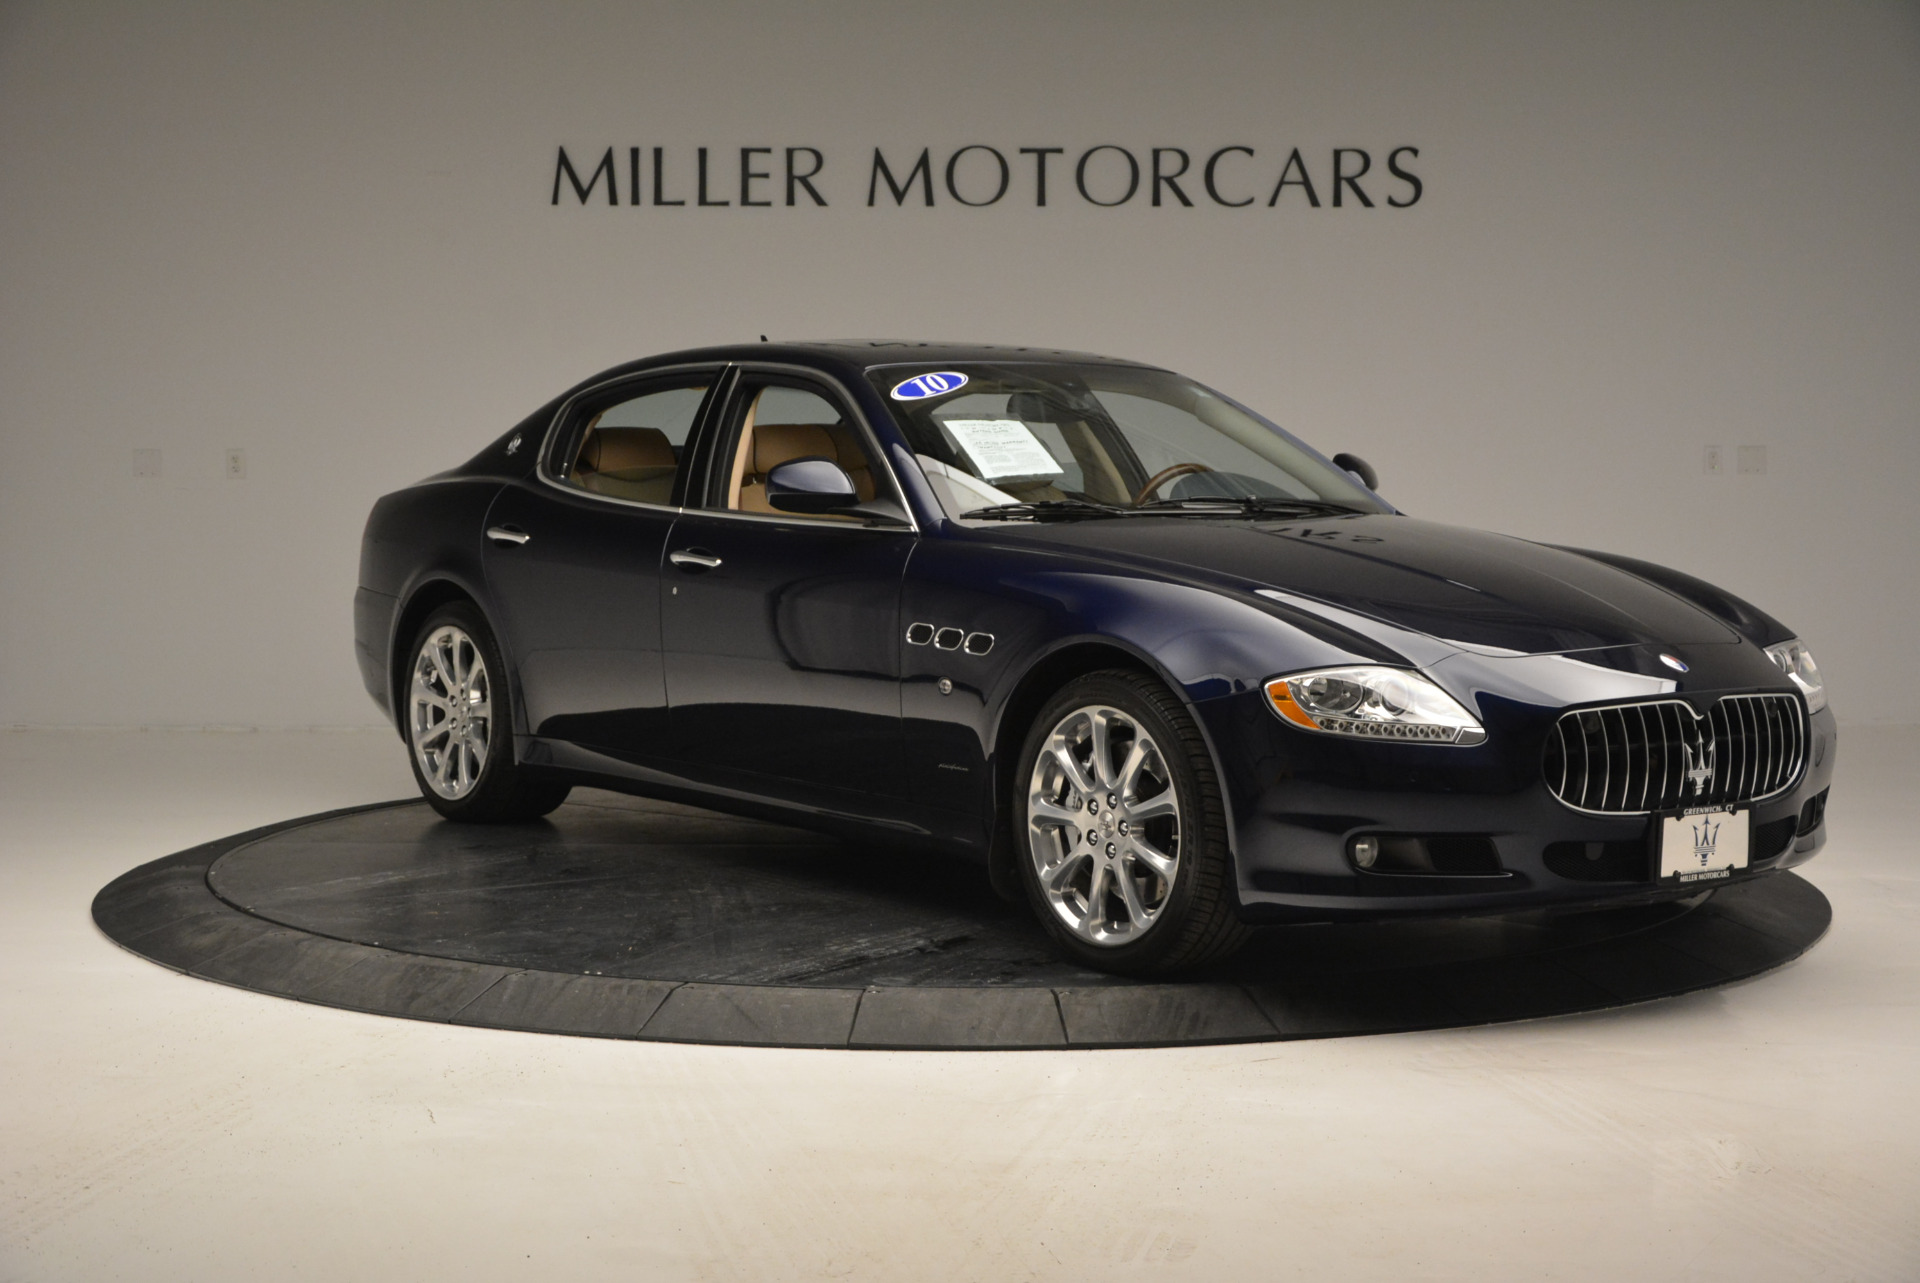 Used 2010 Maserati Quattroporte S For Sale In Westport, CT 795_p11